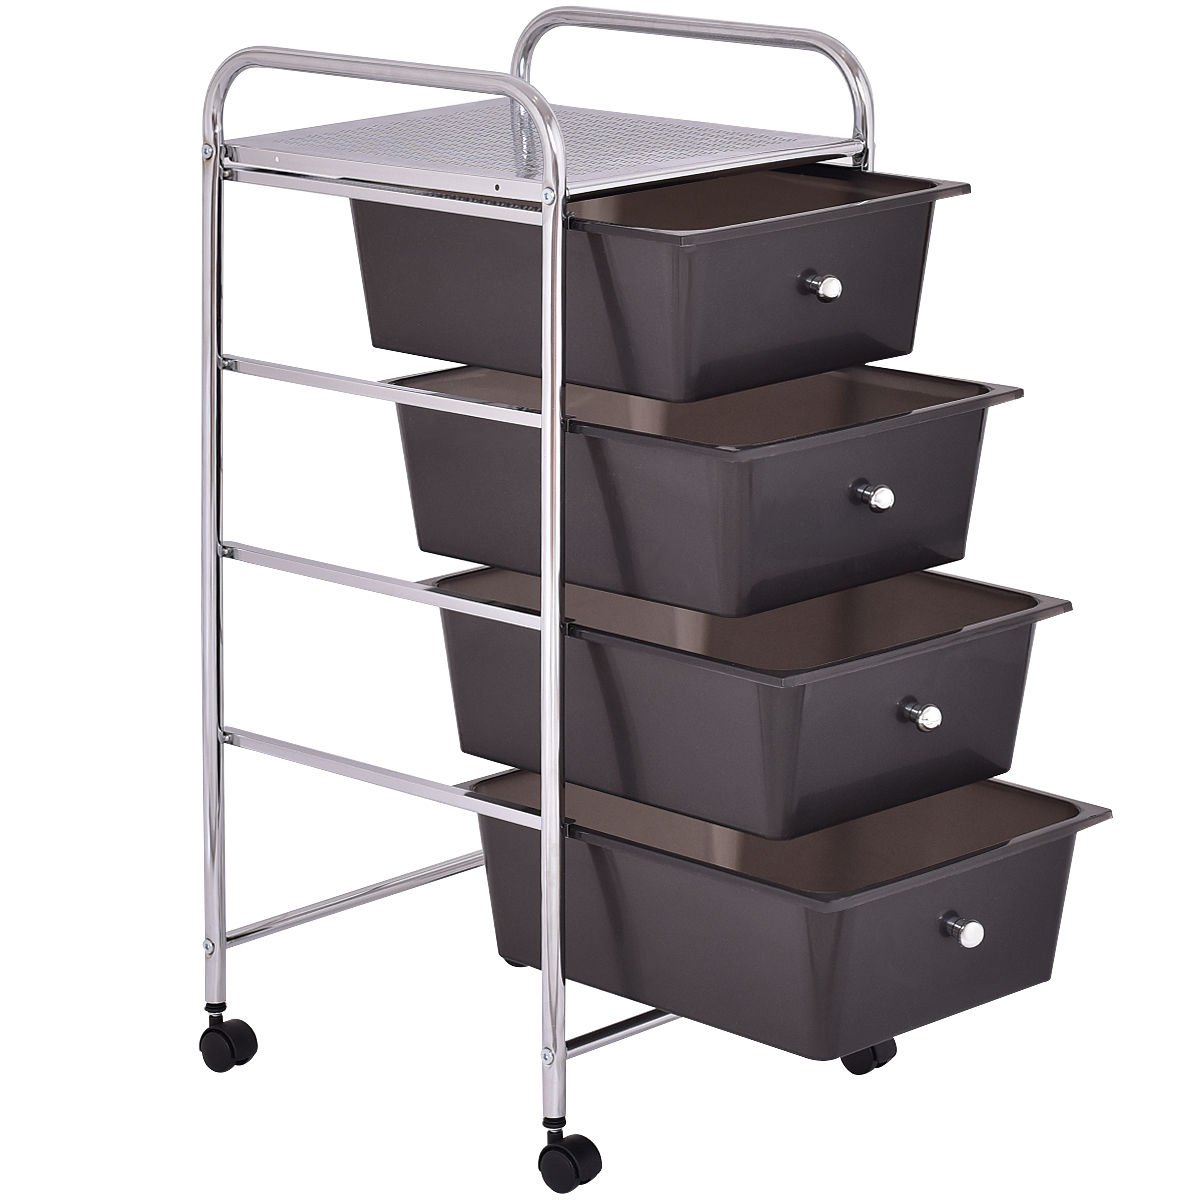 Chrome Black Trolley Organizer Rolling Cart Studio Storage w/ 4 Drawers